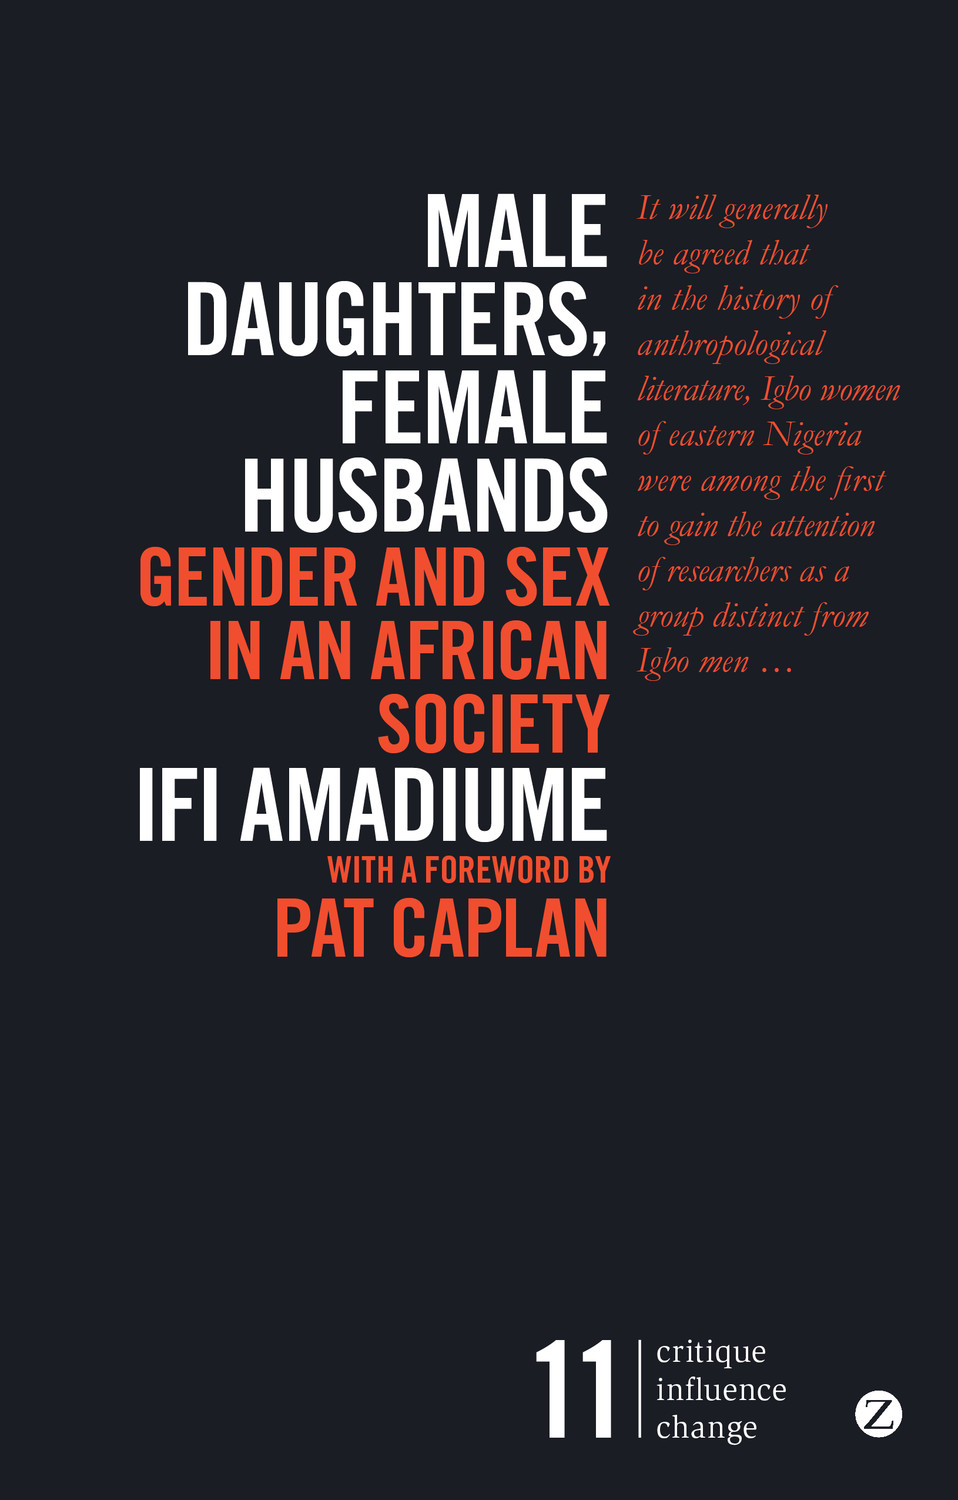 Male Daughters. Female Husbands by Ifi Amadiume